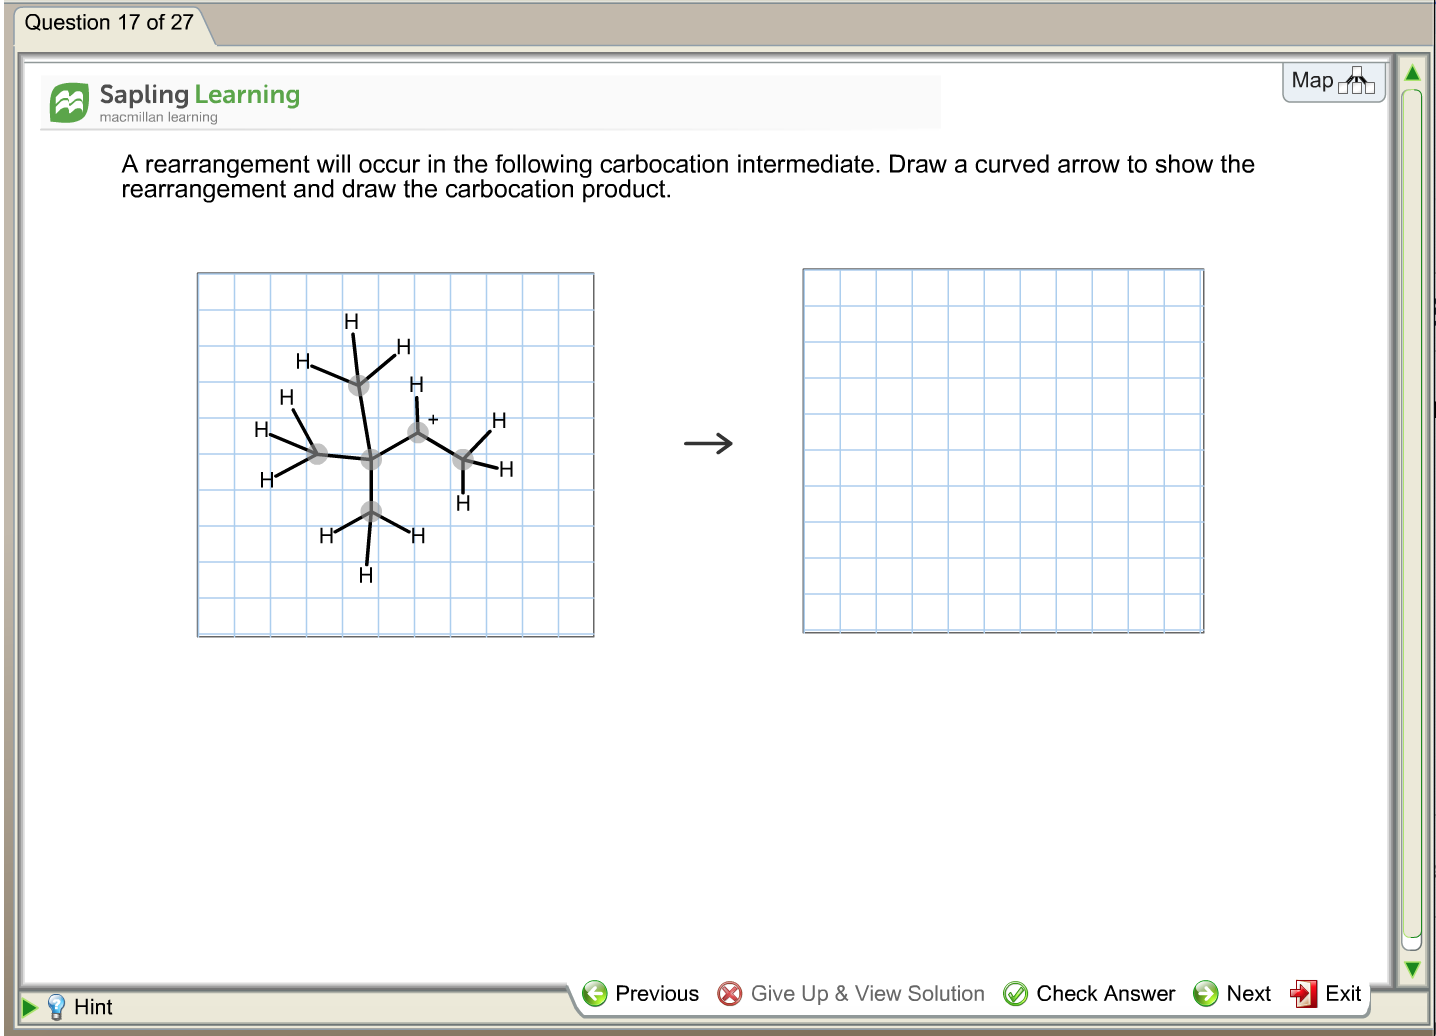 Question 17 of 27 Мар О Sapling Learning macmillan learning A rearrangement will occur in the following carbocation intermediate. Draw a curved arrow to show the rearrangement and draw the carbocation product Н Н н Н. -H Н Н Н H Previous Give Up & View Solution Check Answer Next Exit Hint